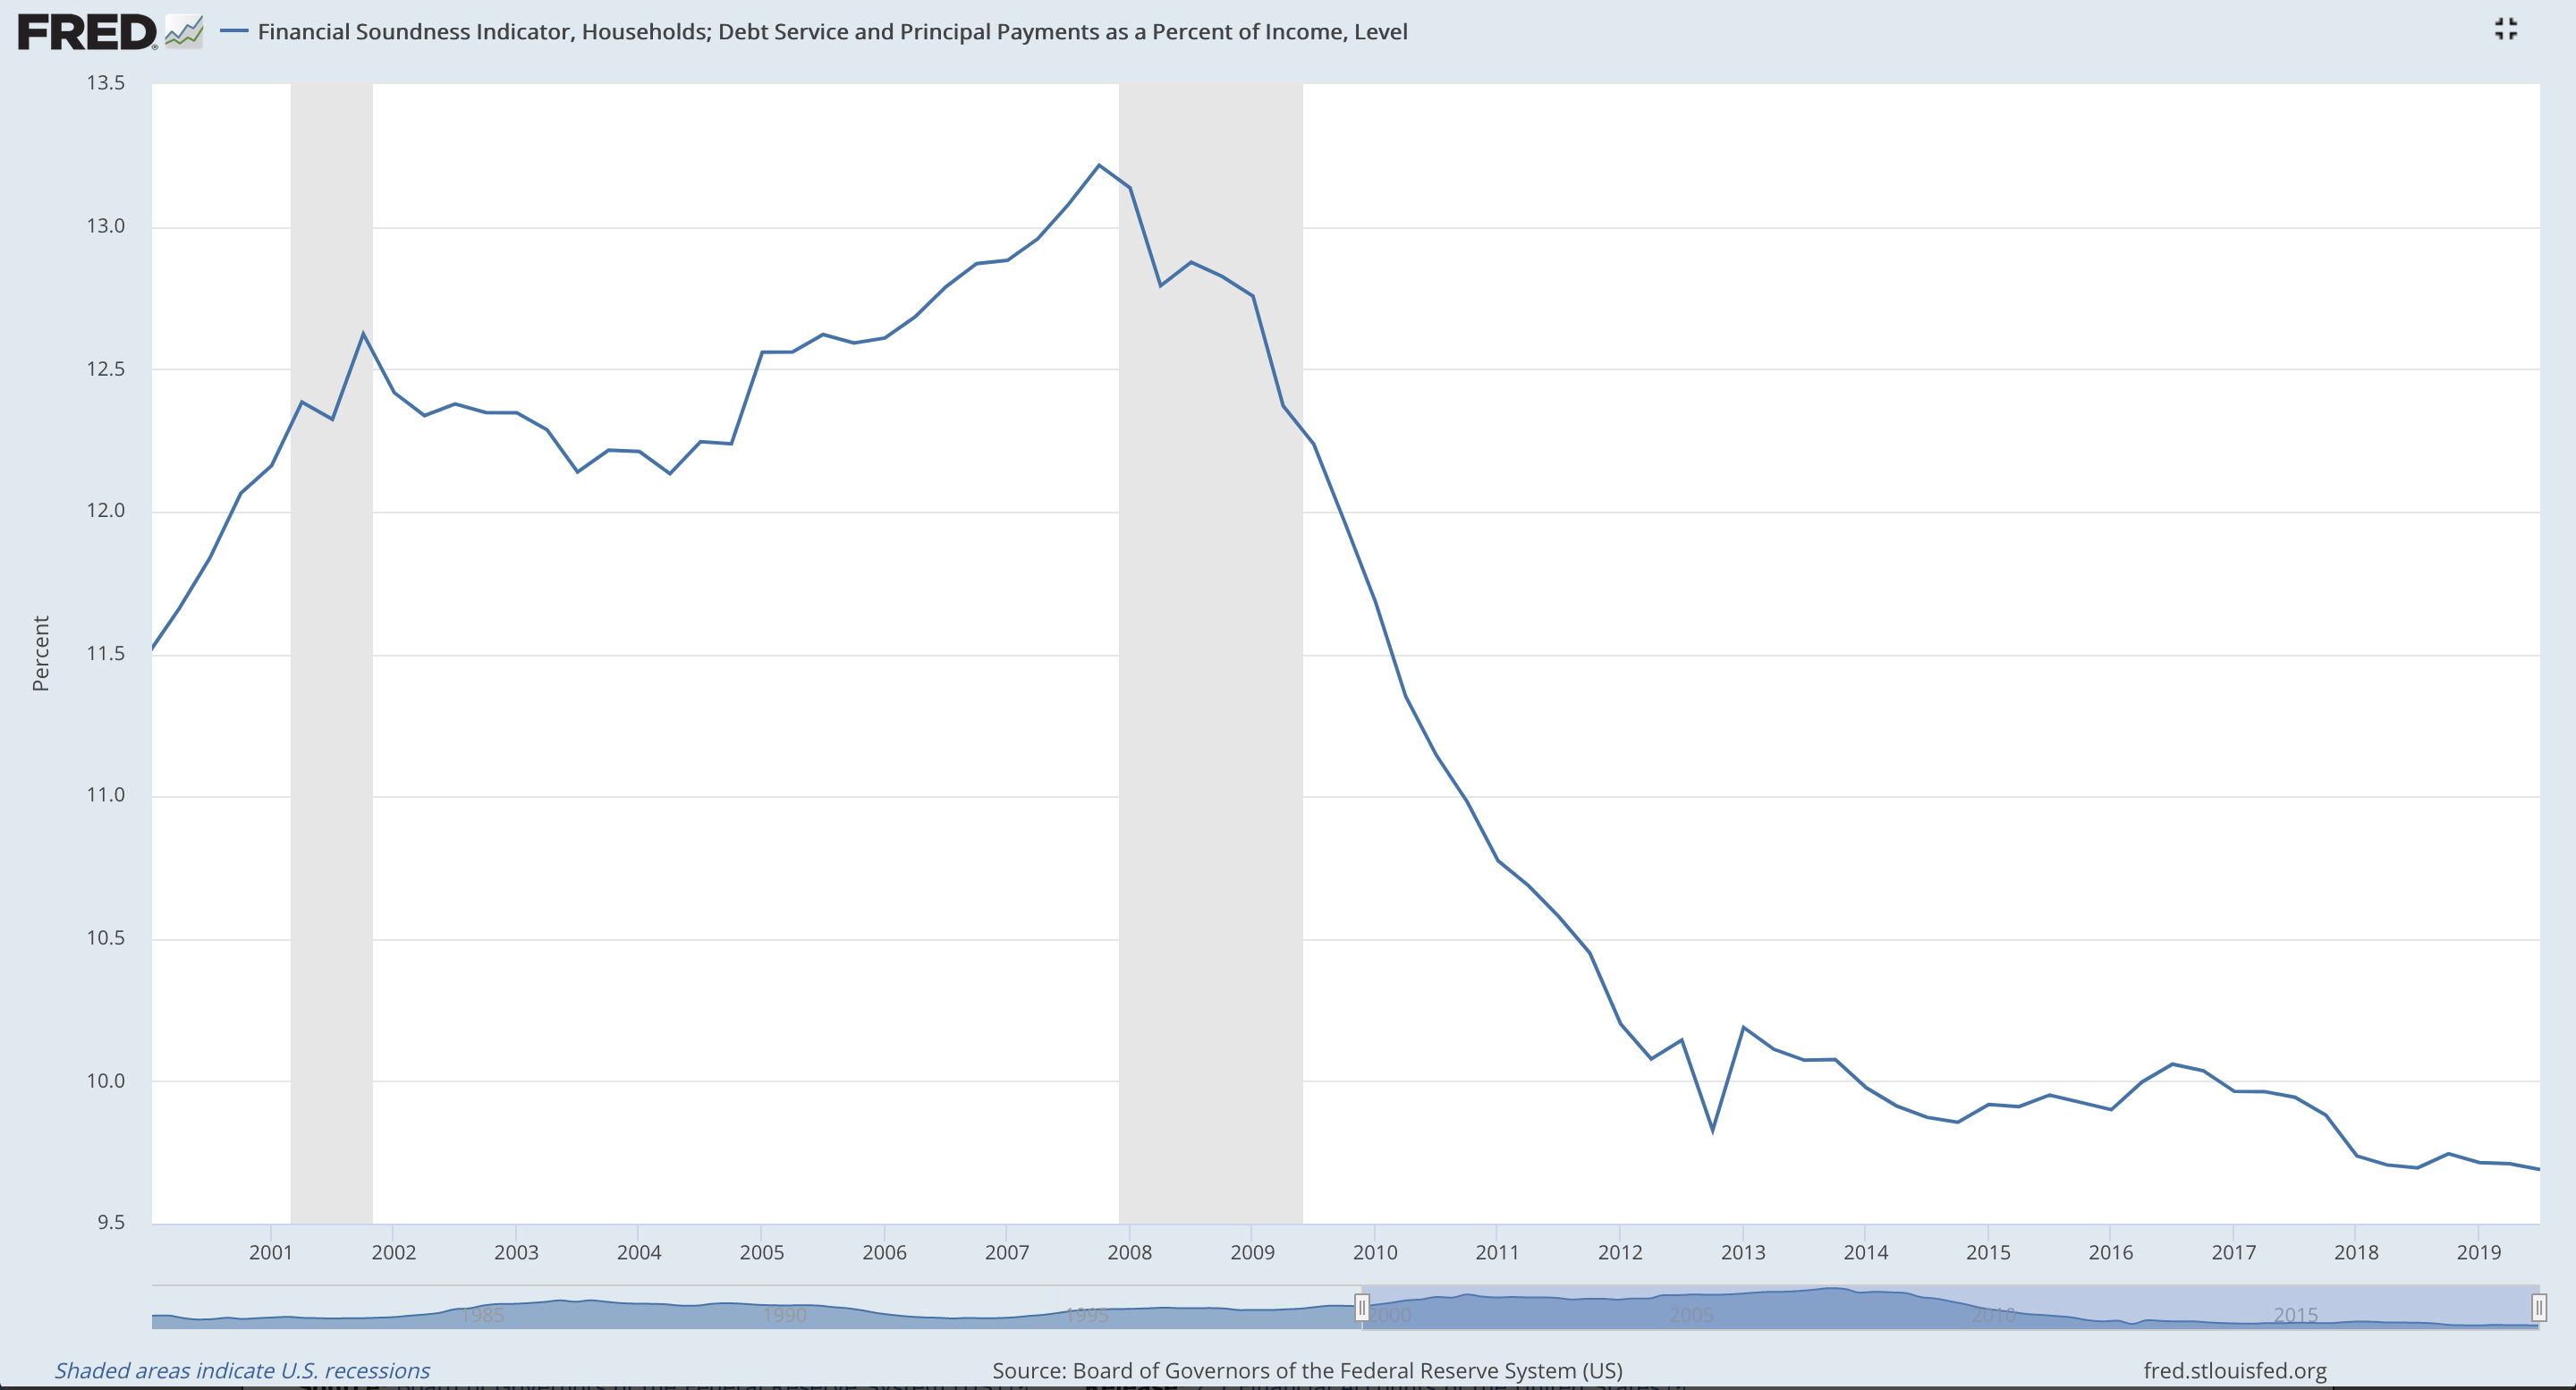 Households: Debt Service and Principal Payments as a Percentage of Income